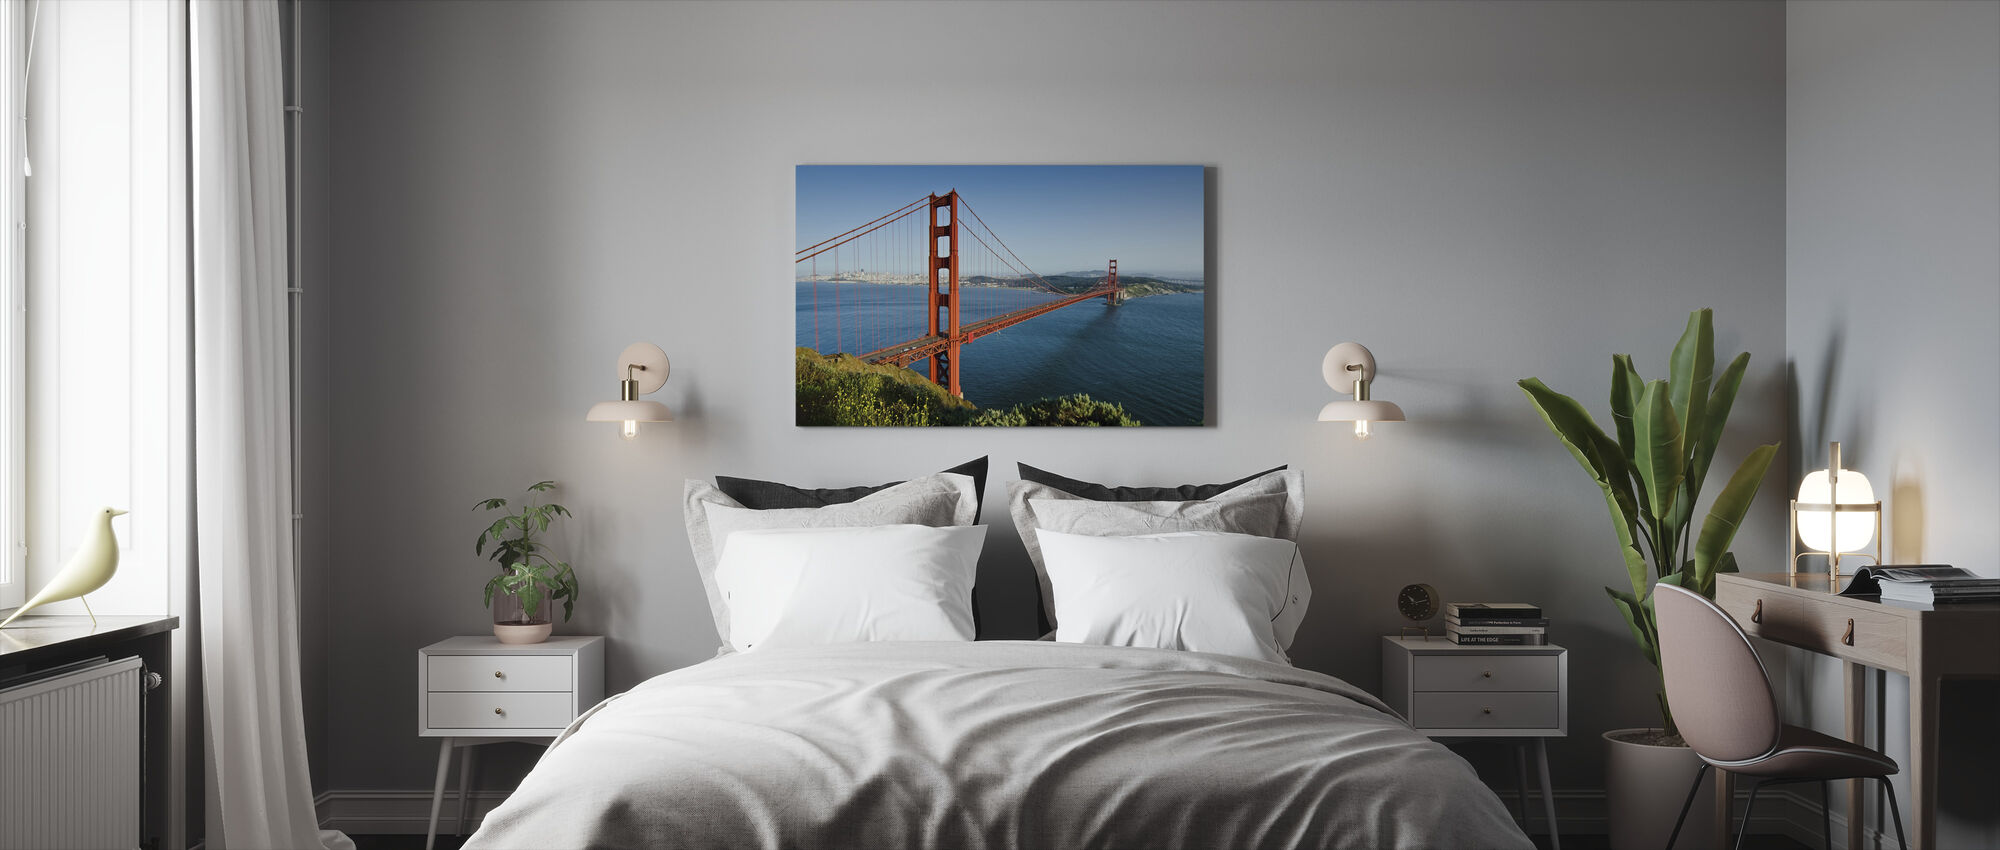 Red, Blue and Green - Canvas print - Bedroom